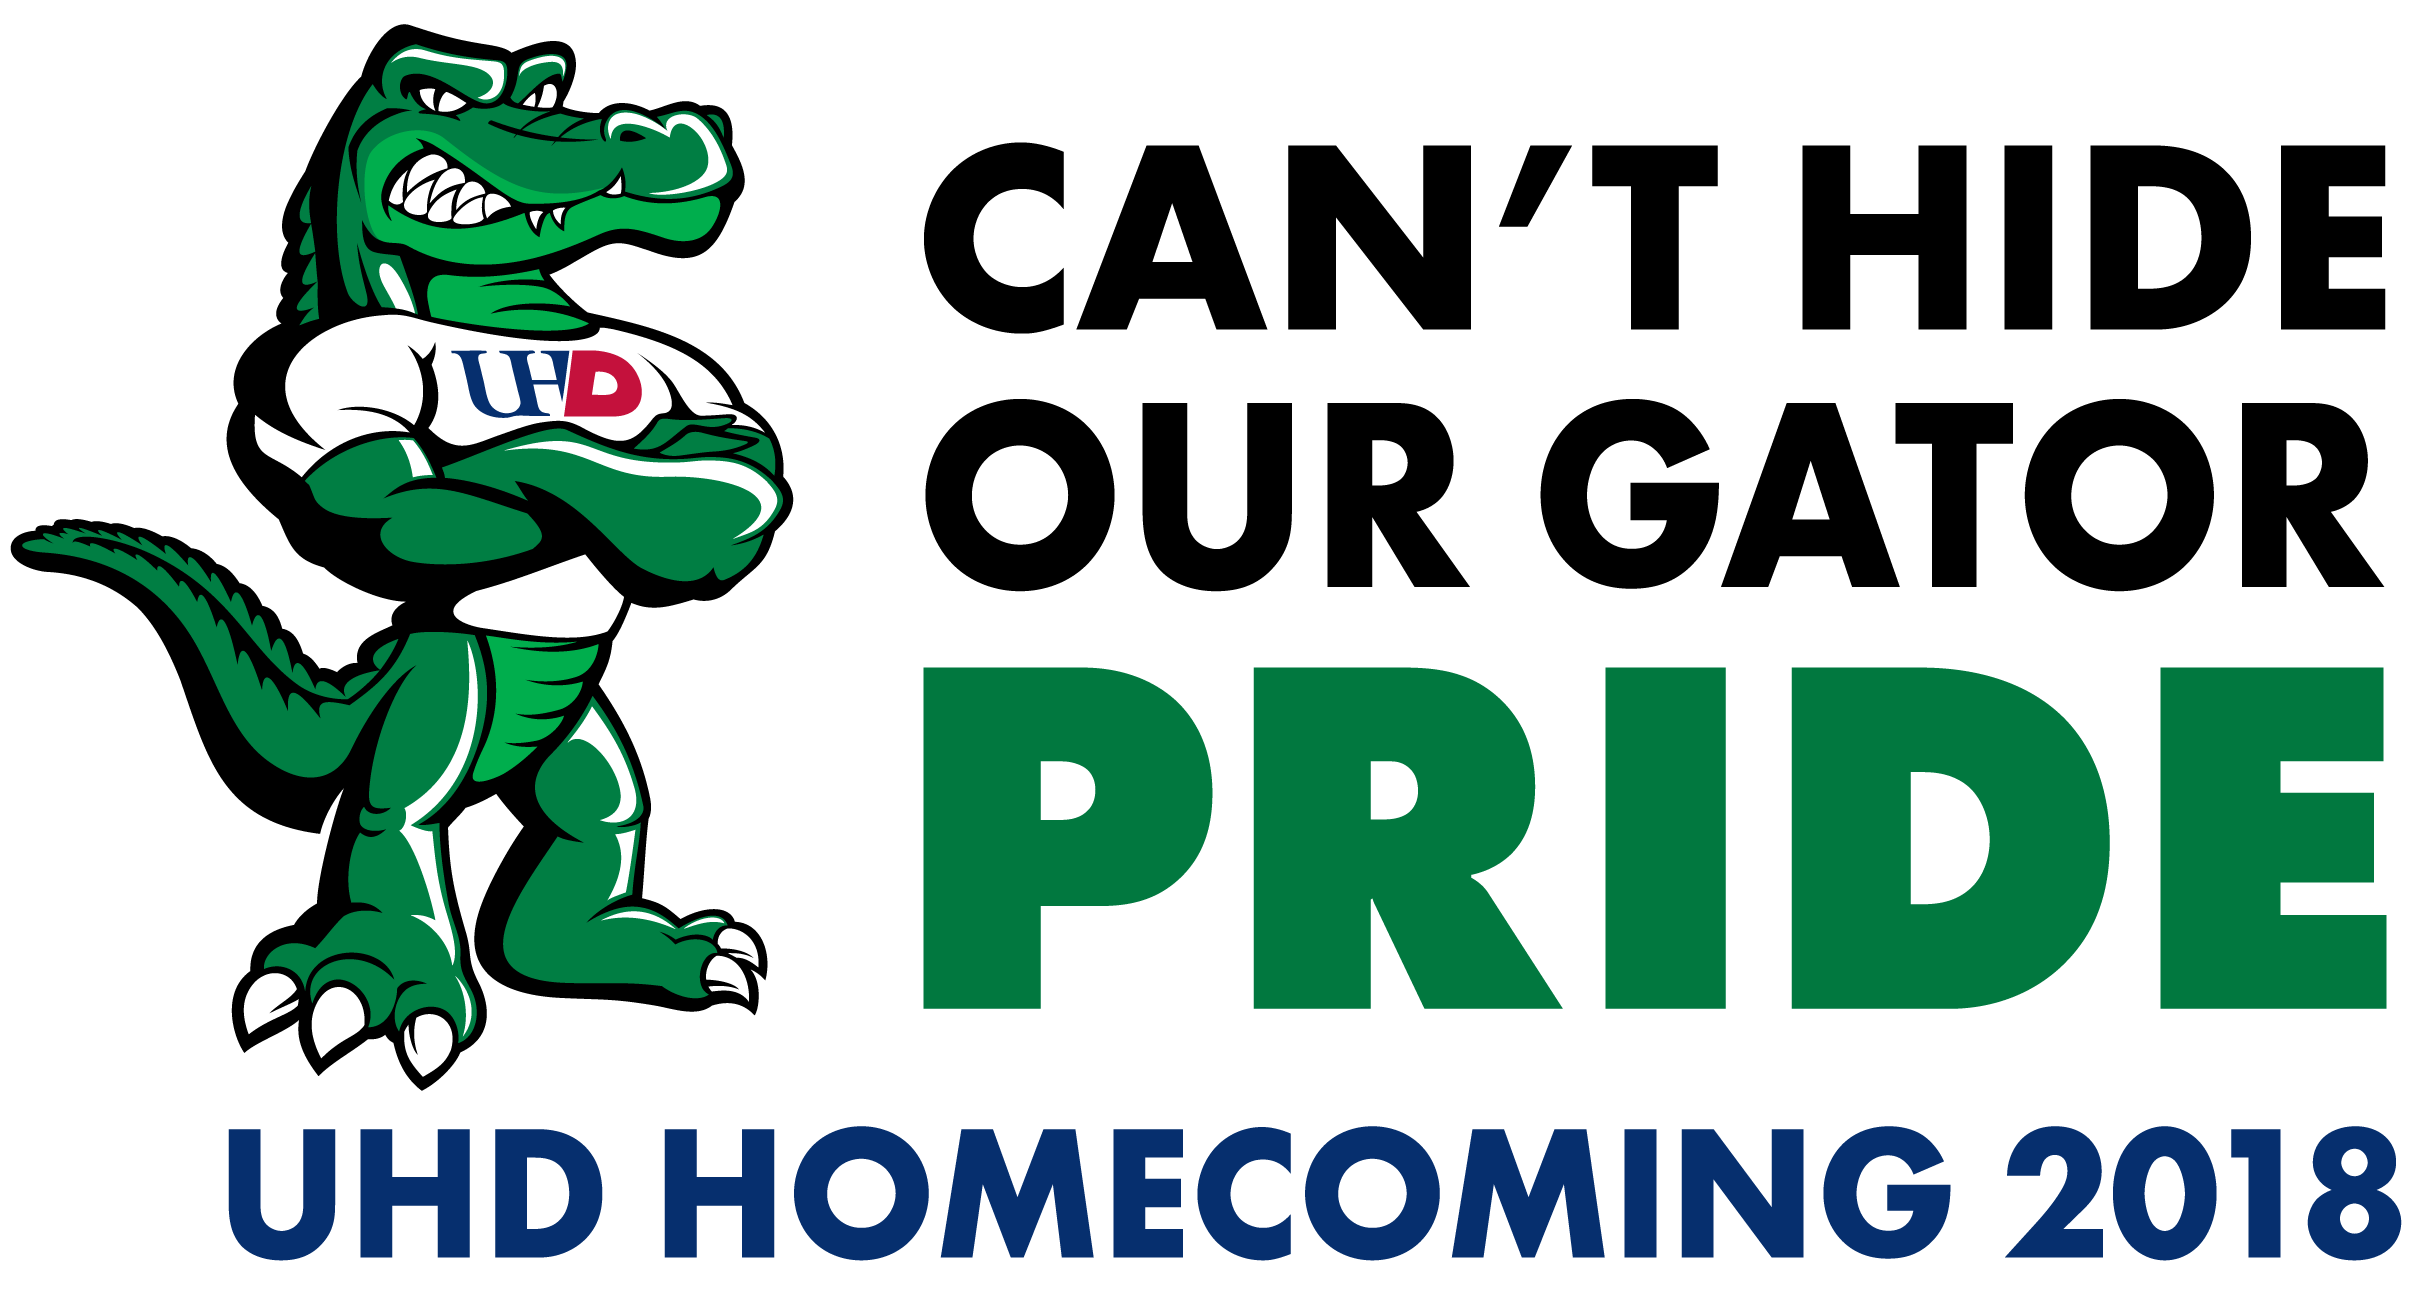 CantHideGatorPride_Homecoming1.png